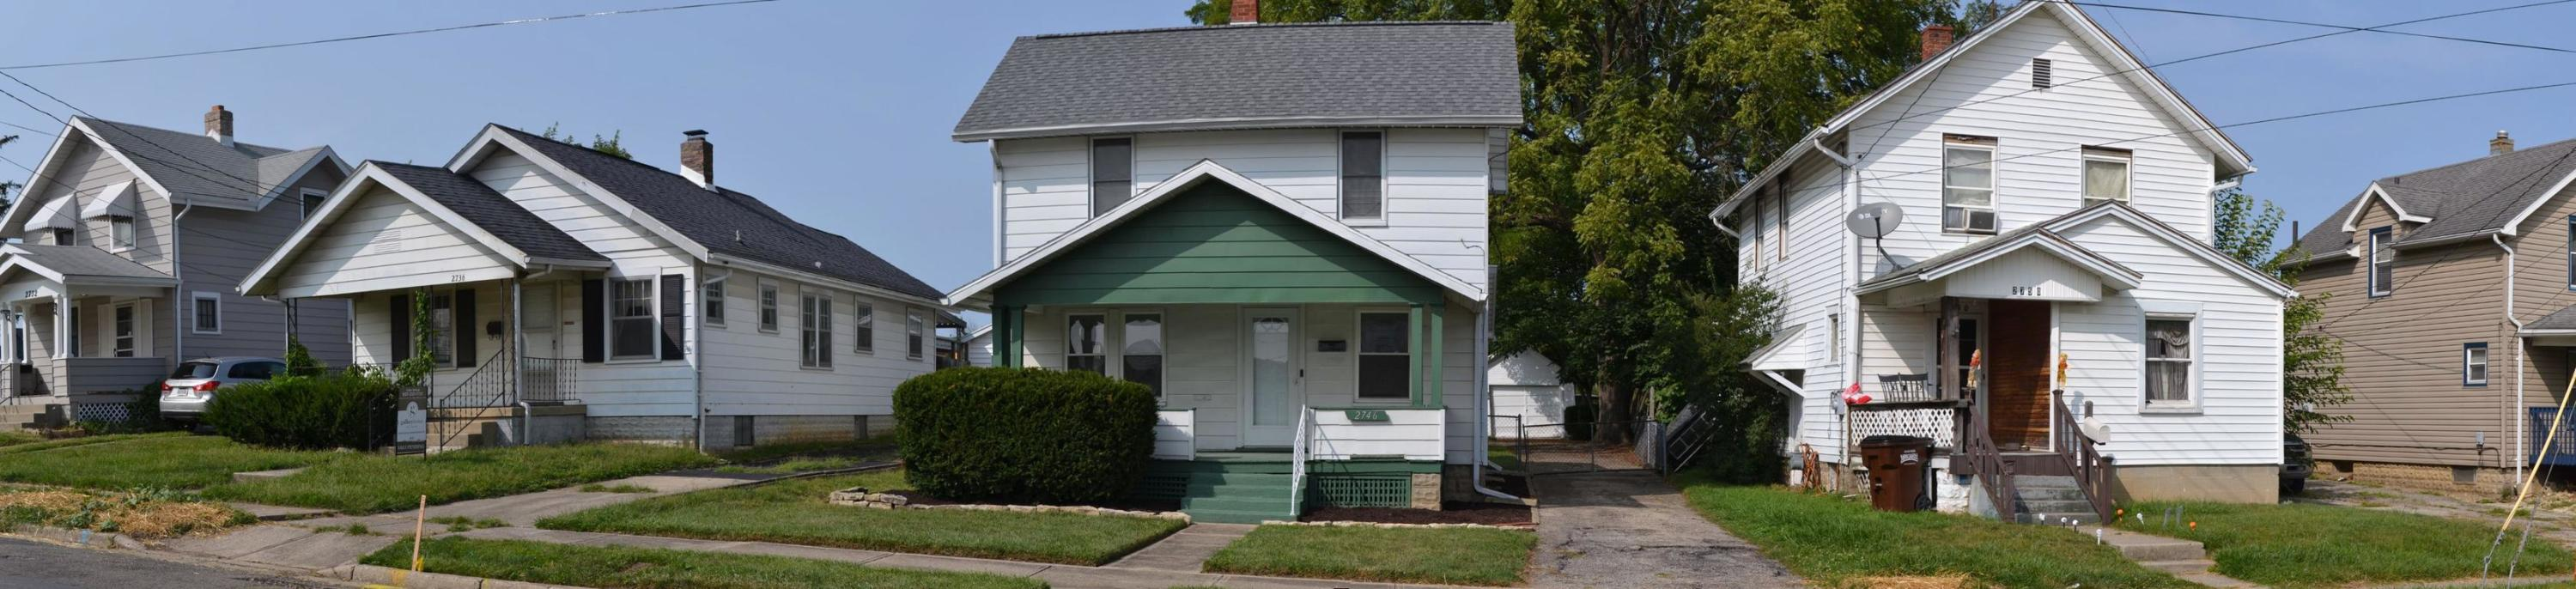 Photo 1 for 2746 Maplewood Ave Springfield, OH 45505